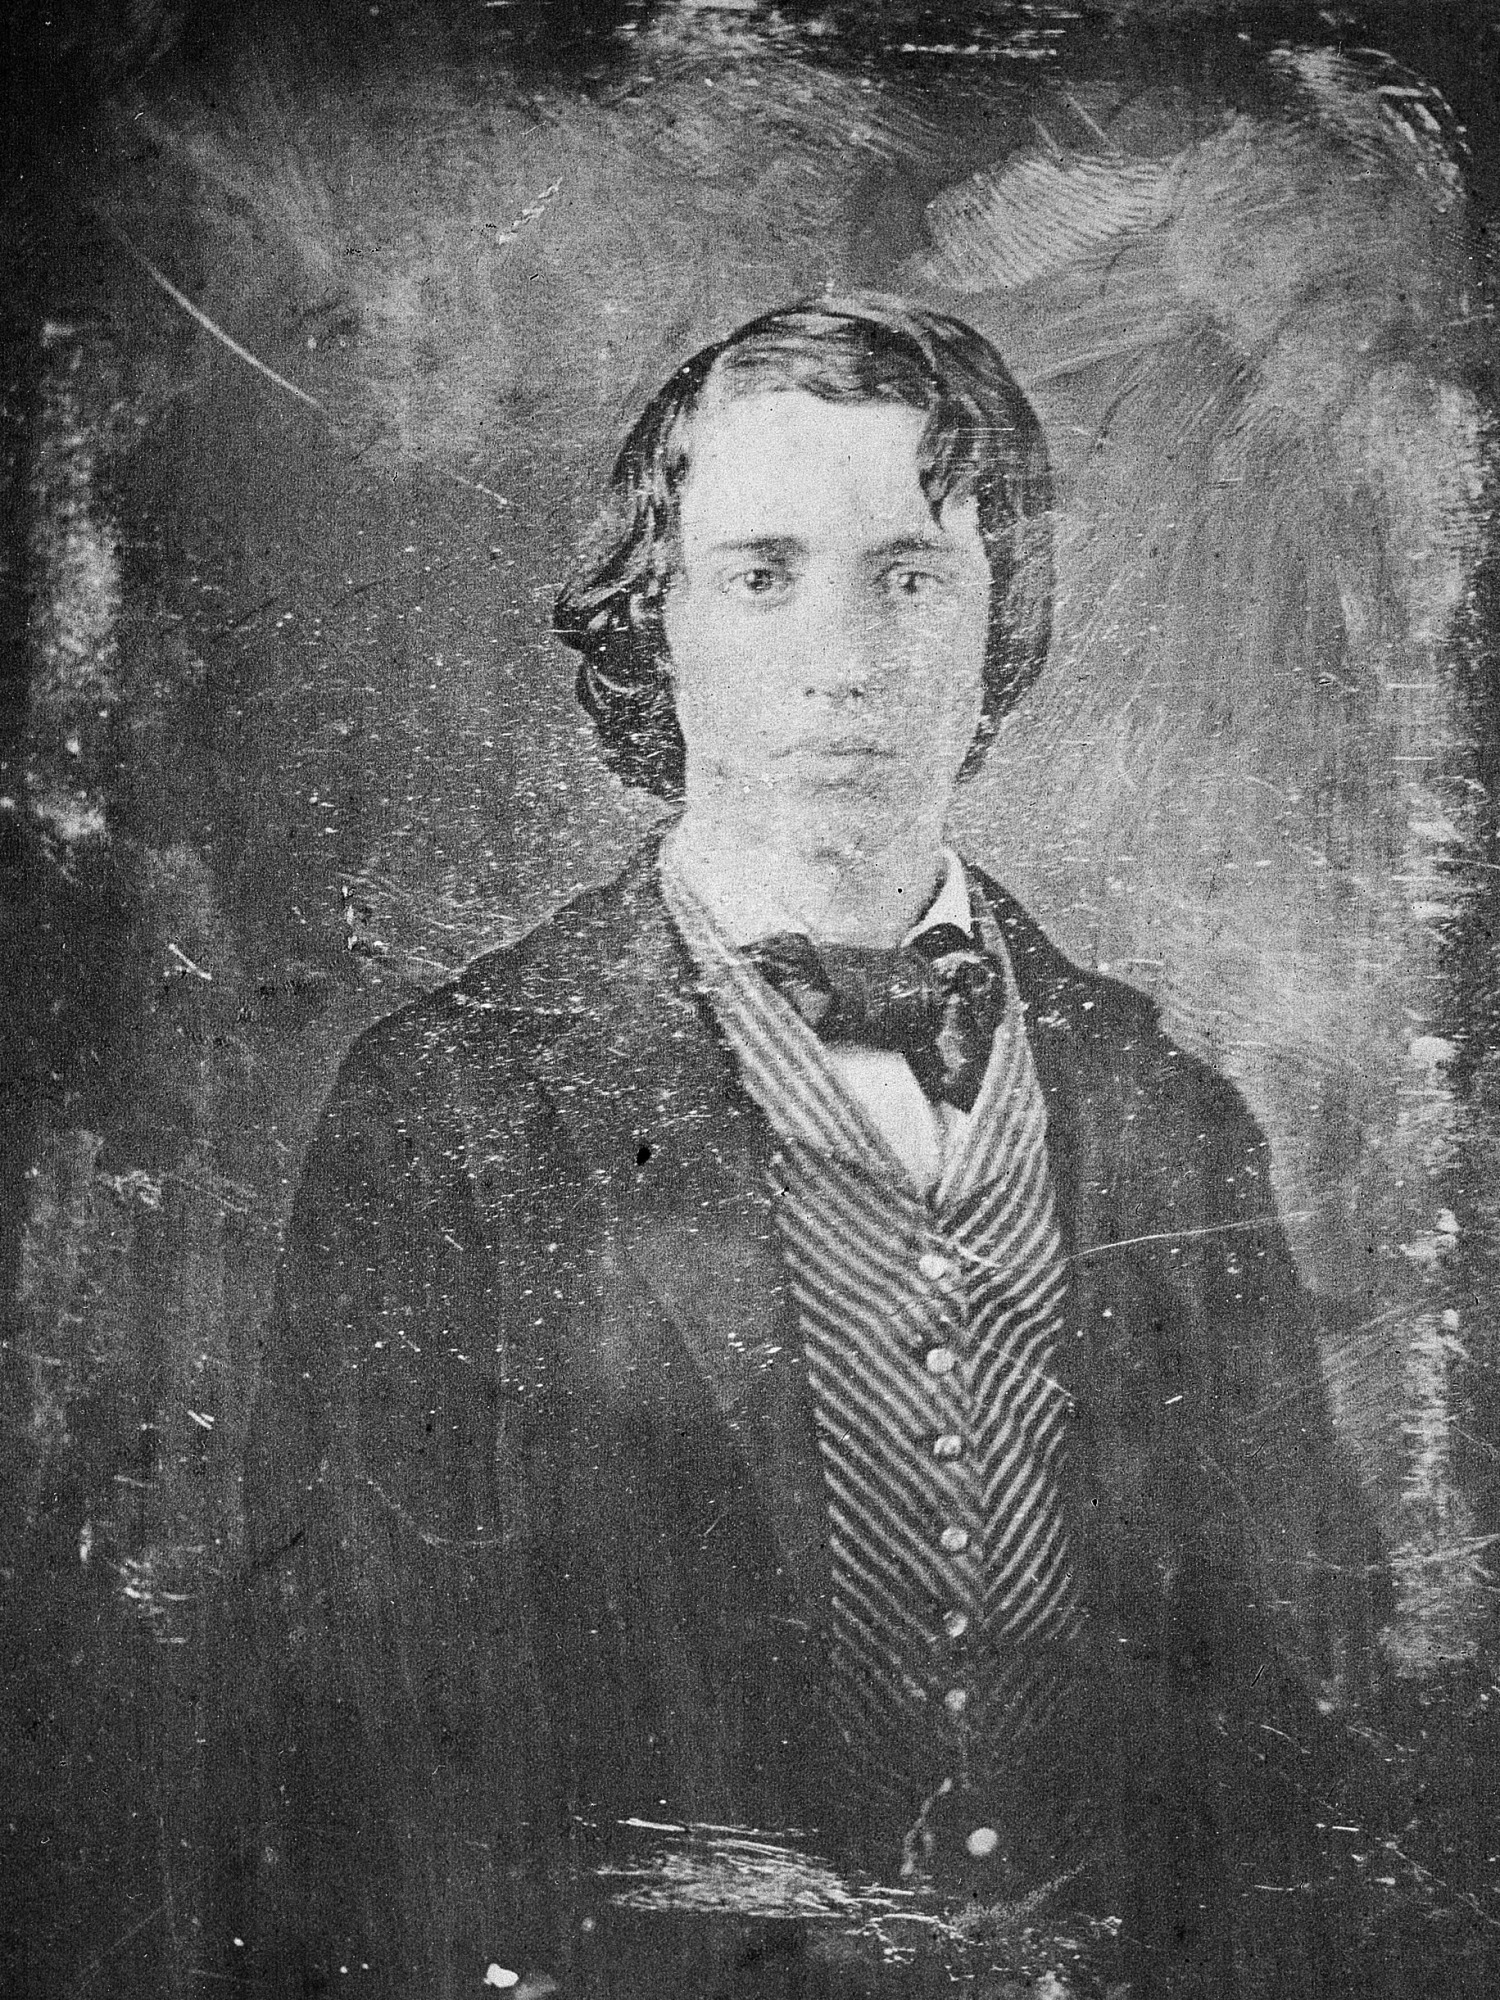 Image is thought to be William Alexander Henry, c. 1855, Smithsonian Institution Archives, negative number 82-3190.